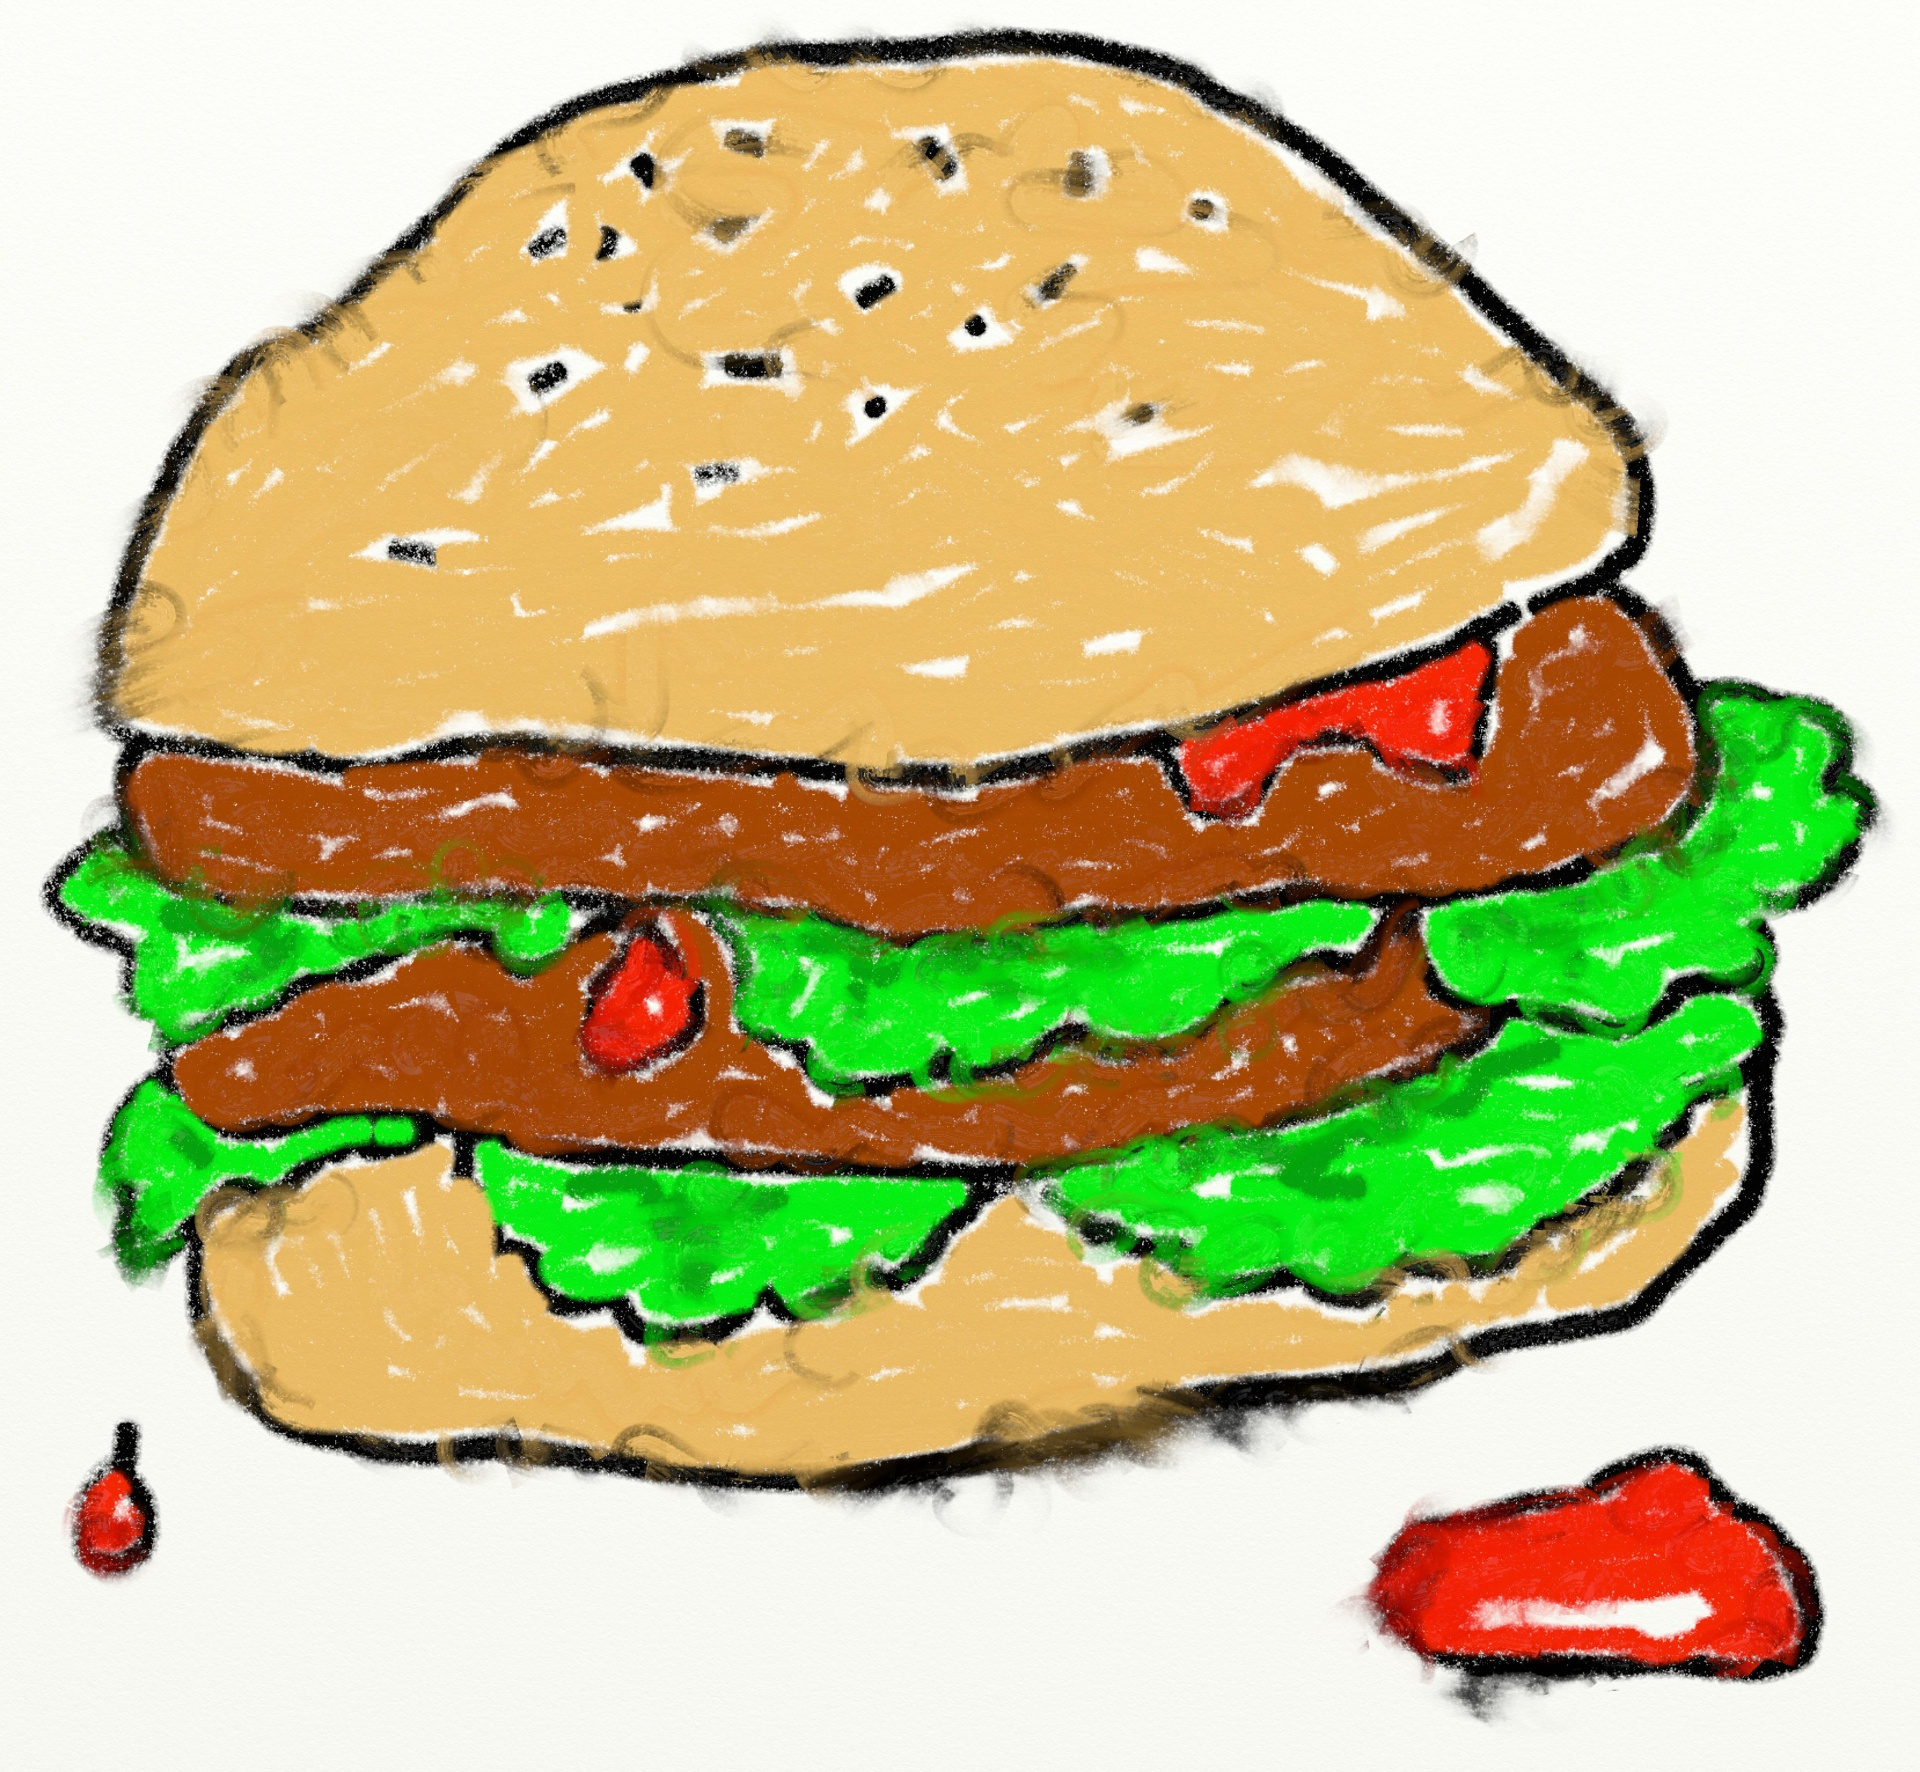 Burger clipart face. Double free collection download